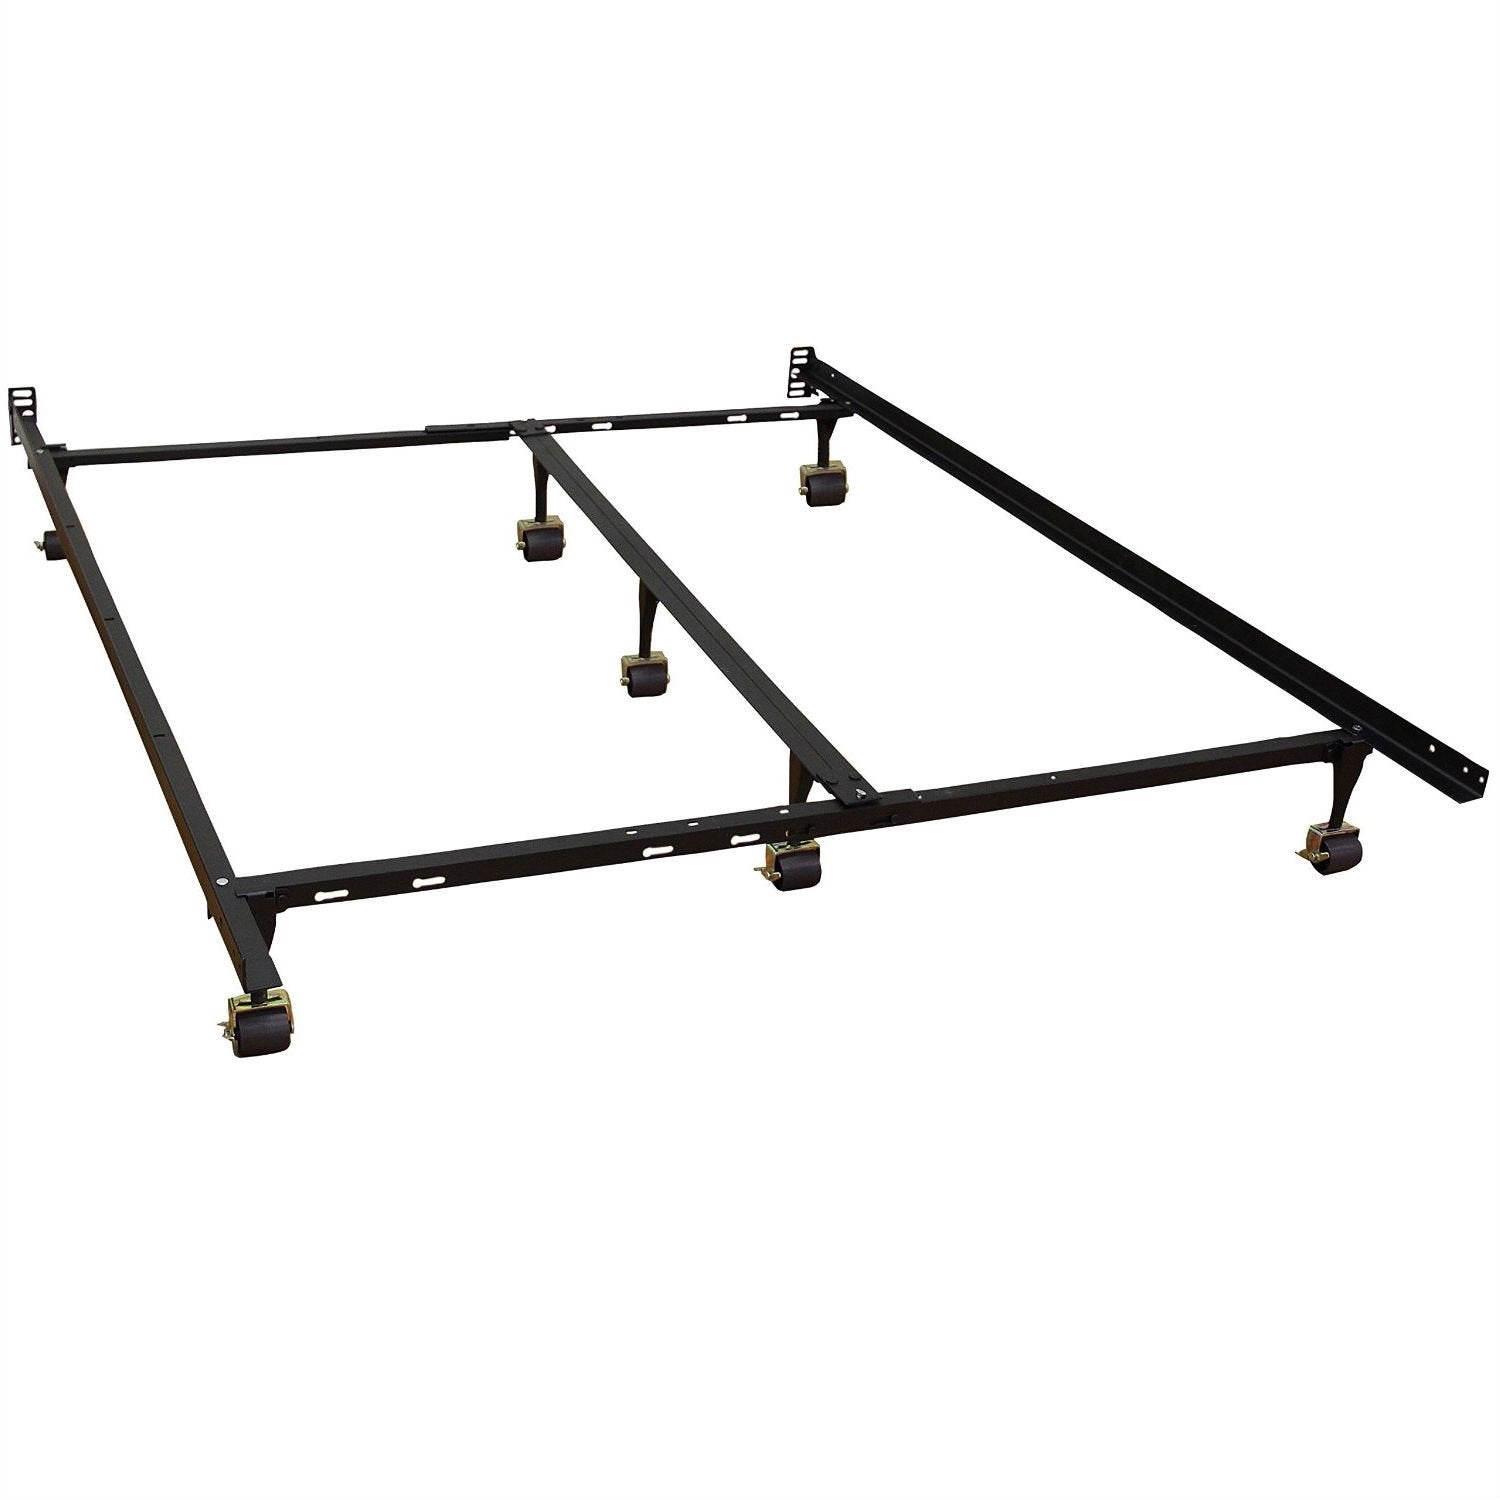 Image of: Queen Size Heavy Duty 7 Leg Metal Bed Frame With Locking Rug Roller Ca Shabbyliving